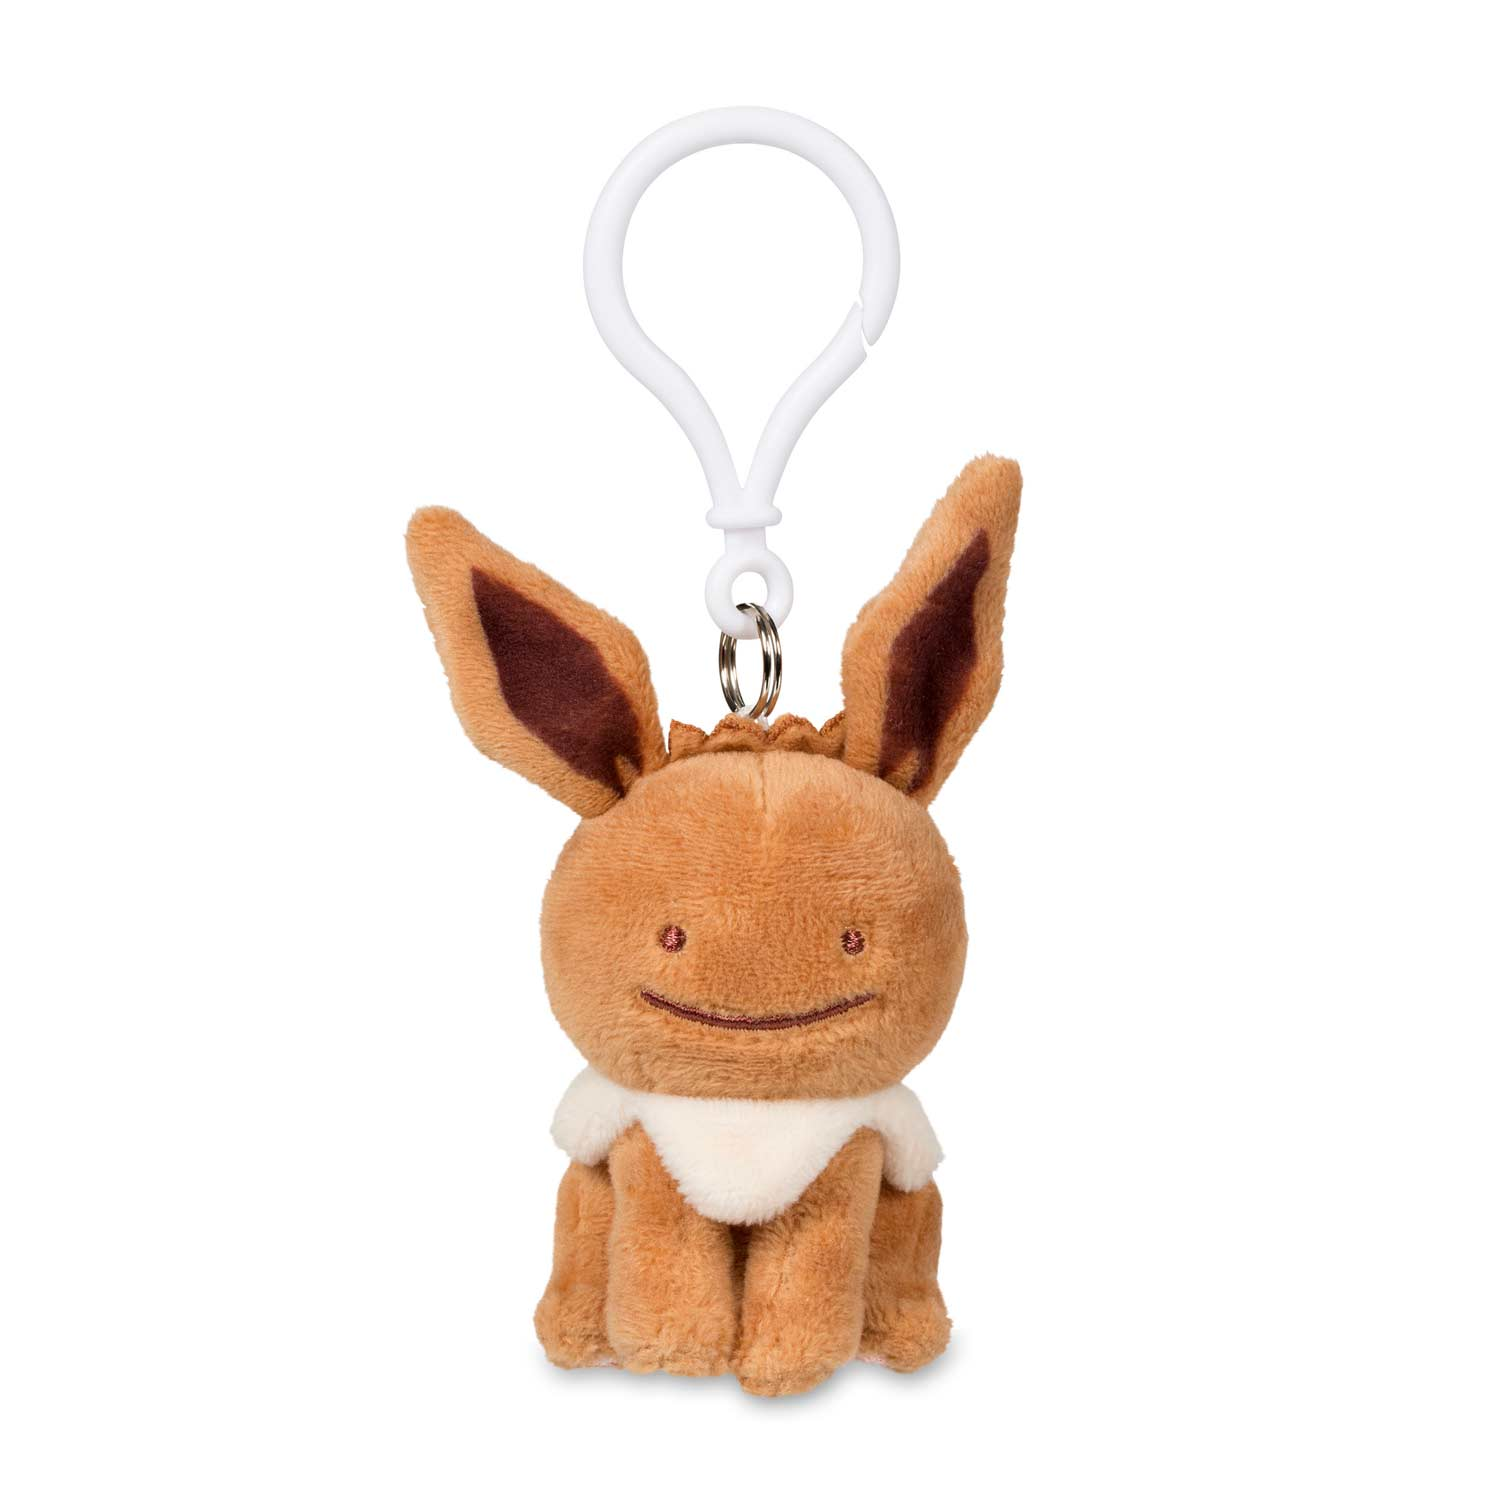 ditto as eevee poké plush pokémon center original